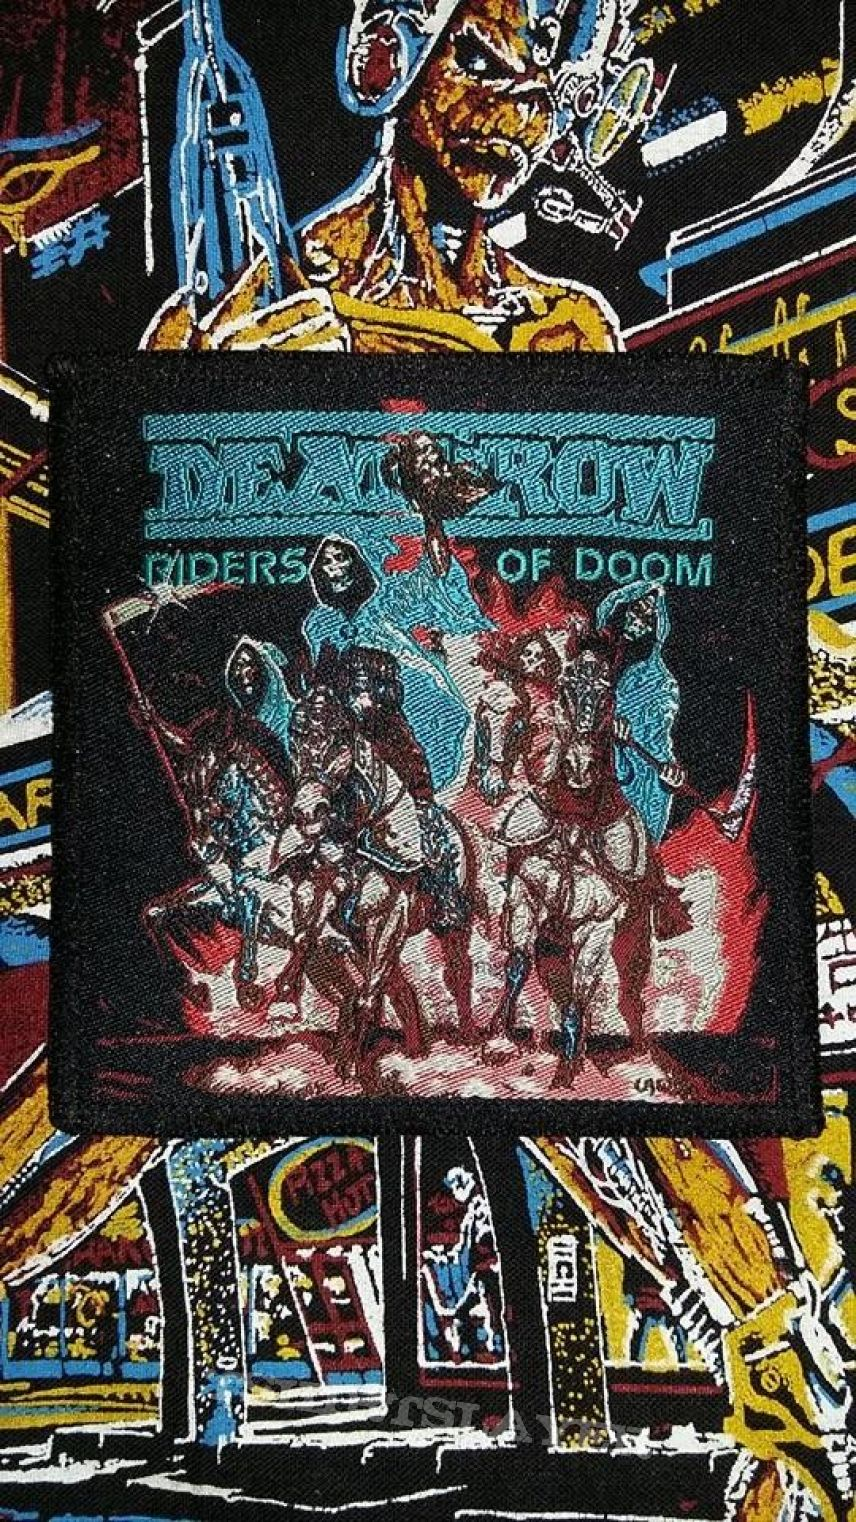 Deathrow-Riders Of Doom